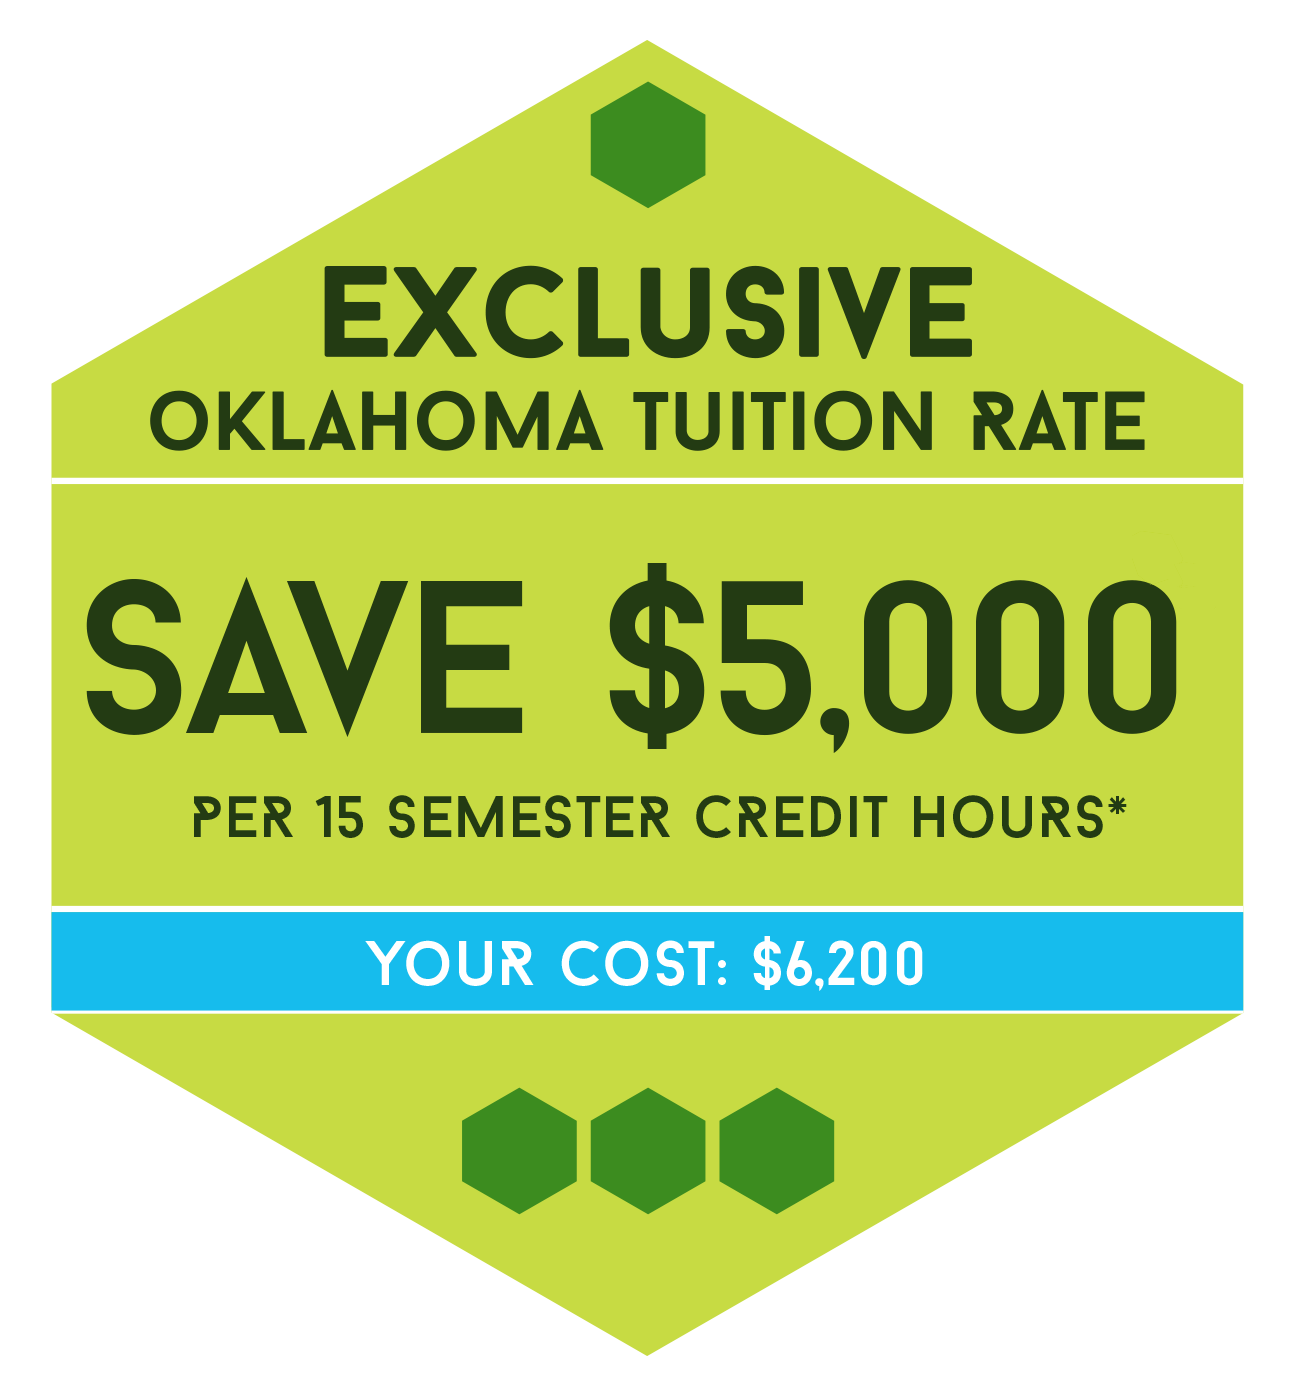 Exclusive Oklahoma Tuition Rate: Save $5,000 per 15 semester credit hours. Your cost: $6,200.